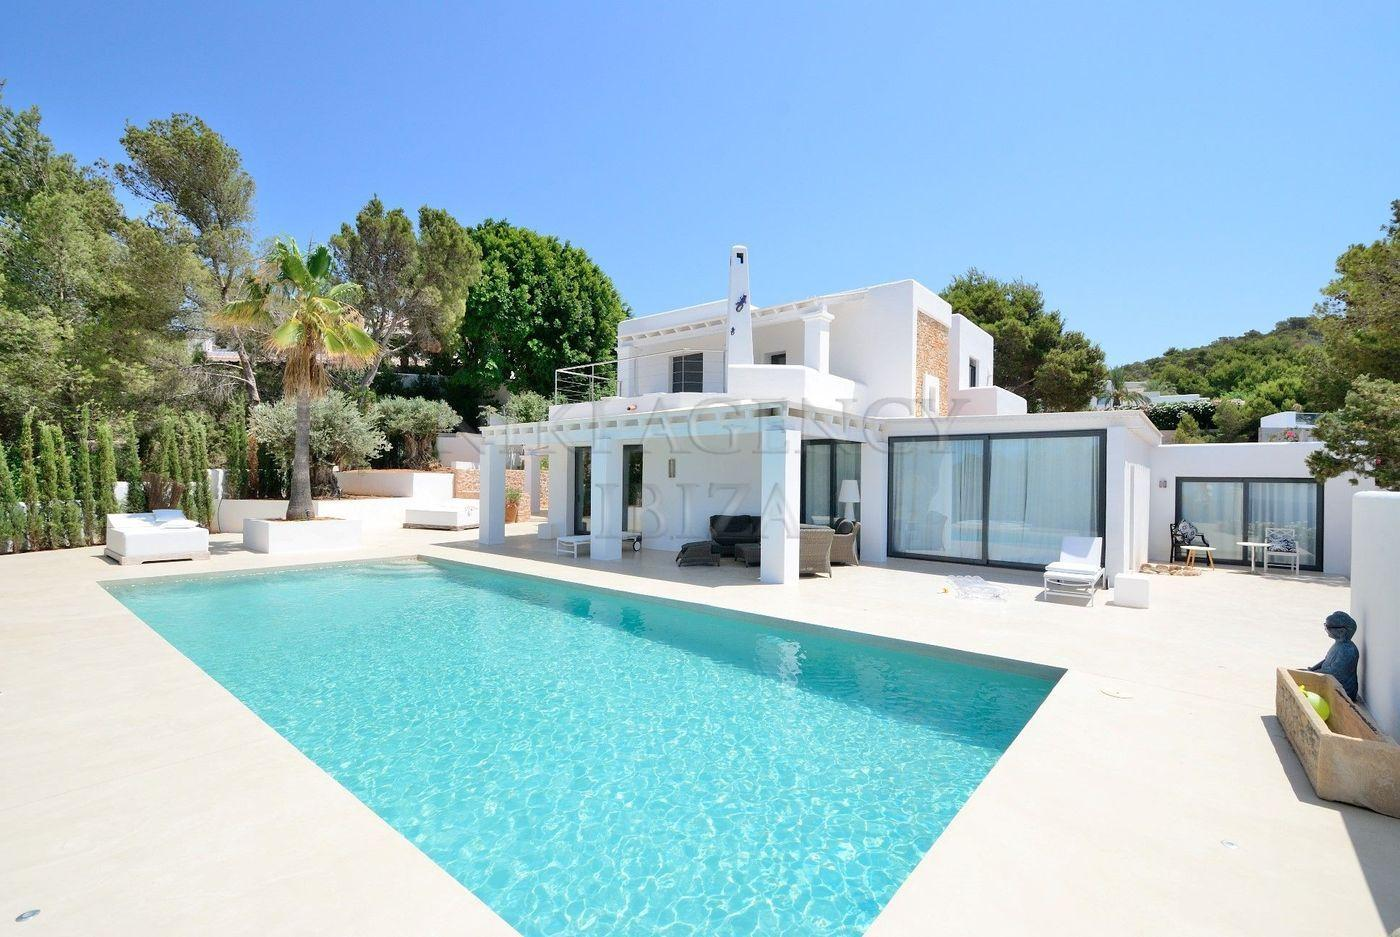 1. House for sale in Sant Josep de sa Talaia Ibiza - Fantastic 4 Bed Villa For Sale in Sant Josep de sa Talaia, Ibiza!